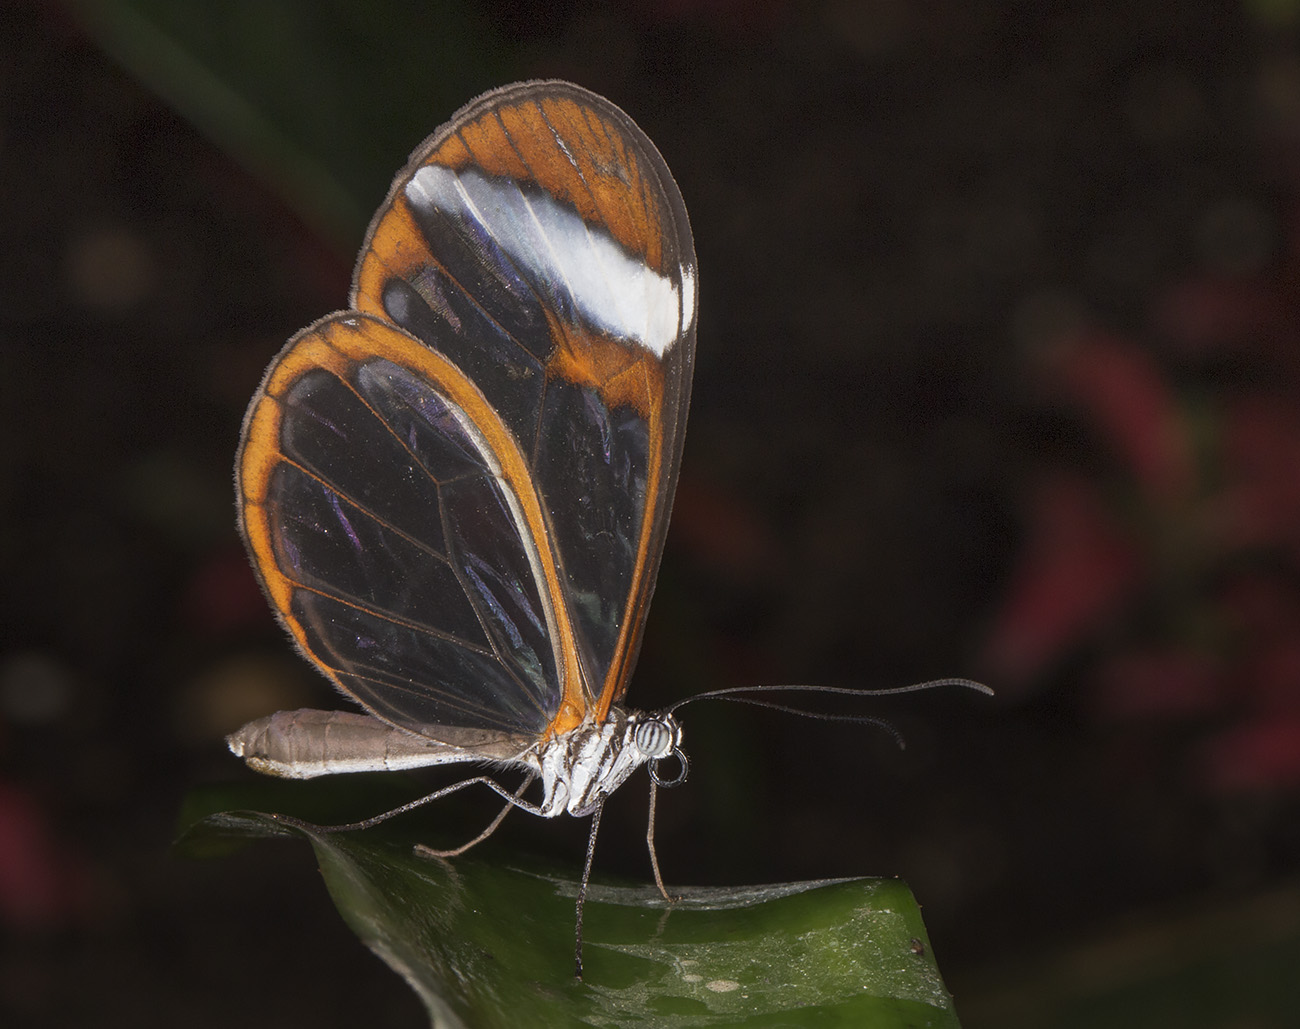 Glasswing, Greta oto.  Wisley Gardens, Butterflies in the Glasshouse, 10 February 2015.